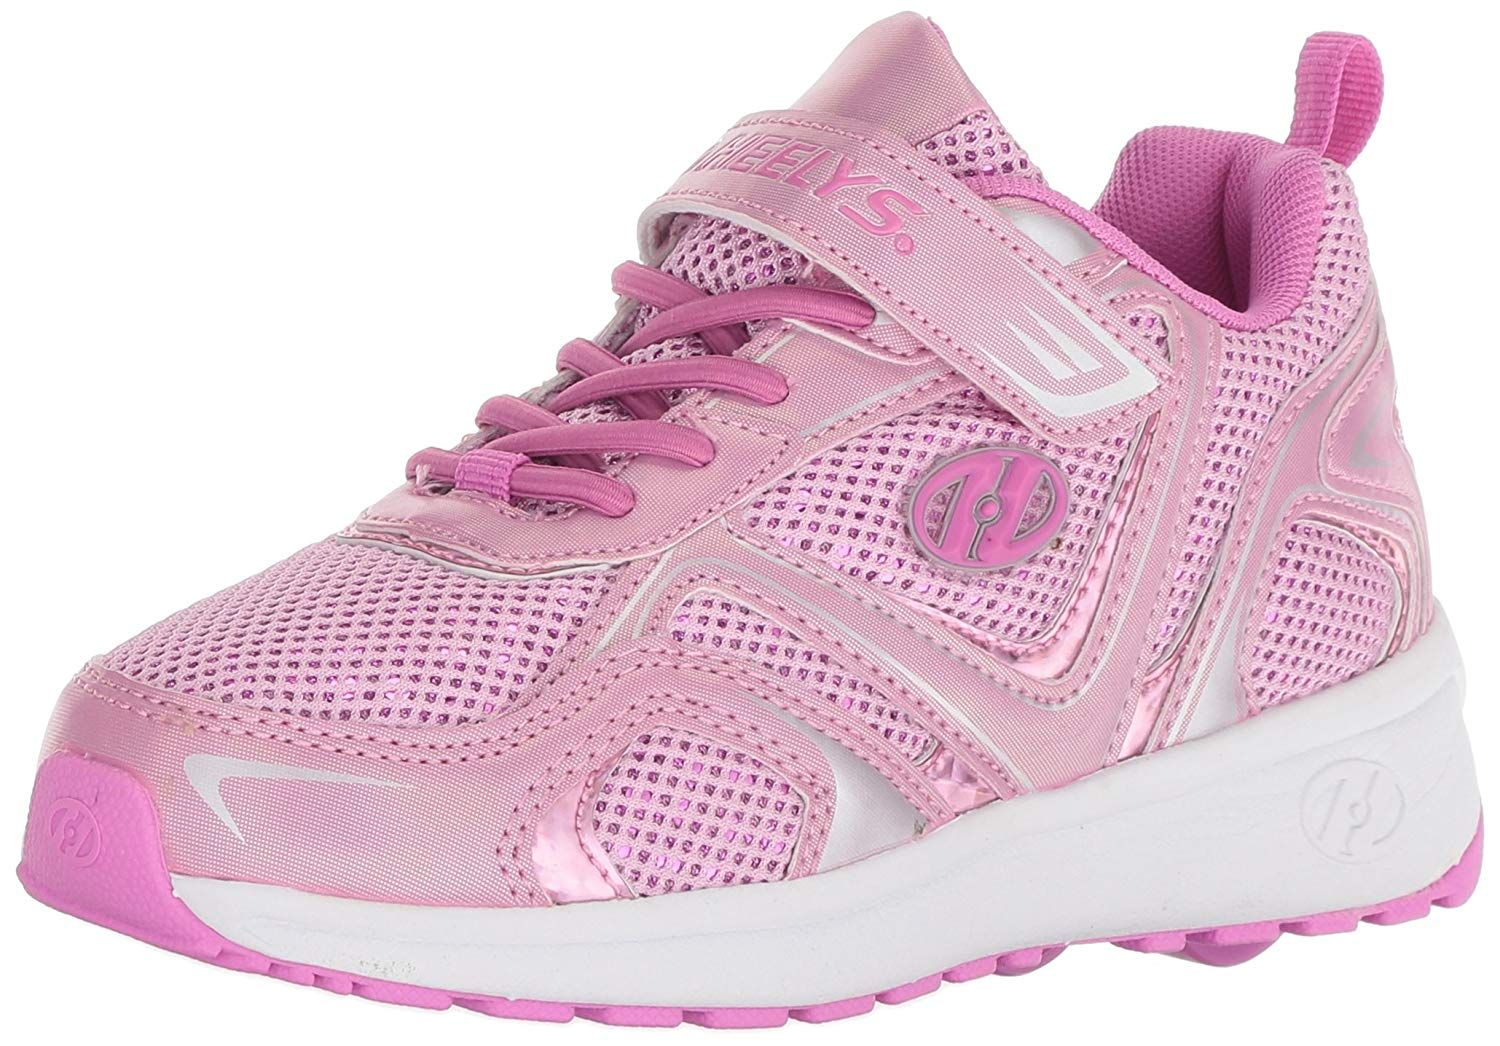 Heelys kids rise x2 sneaker more info could be found